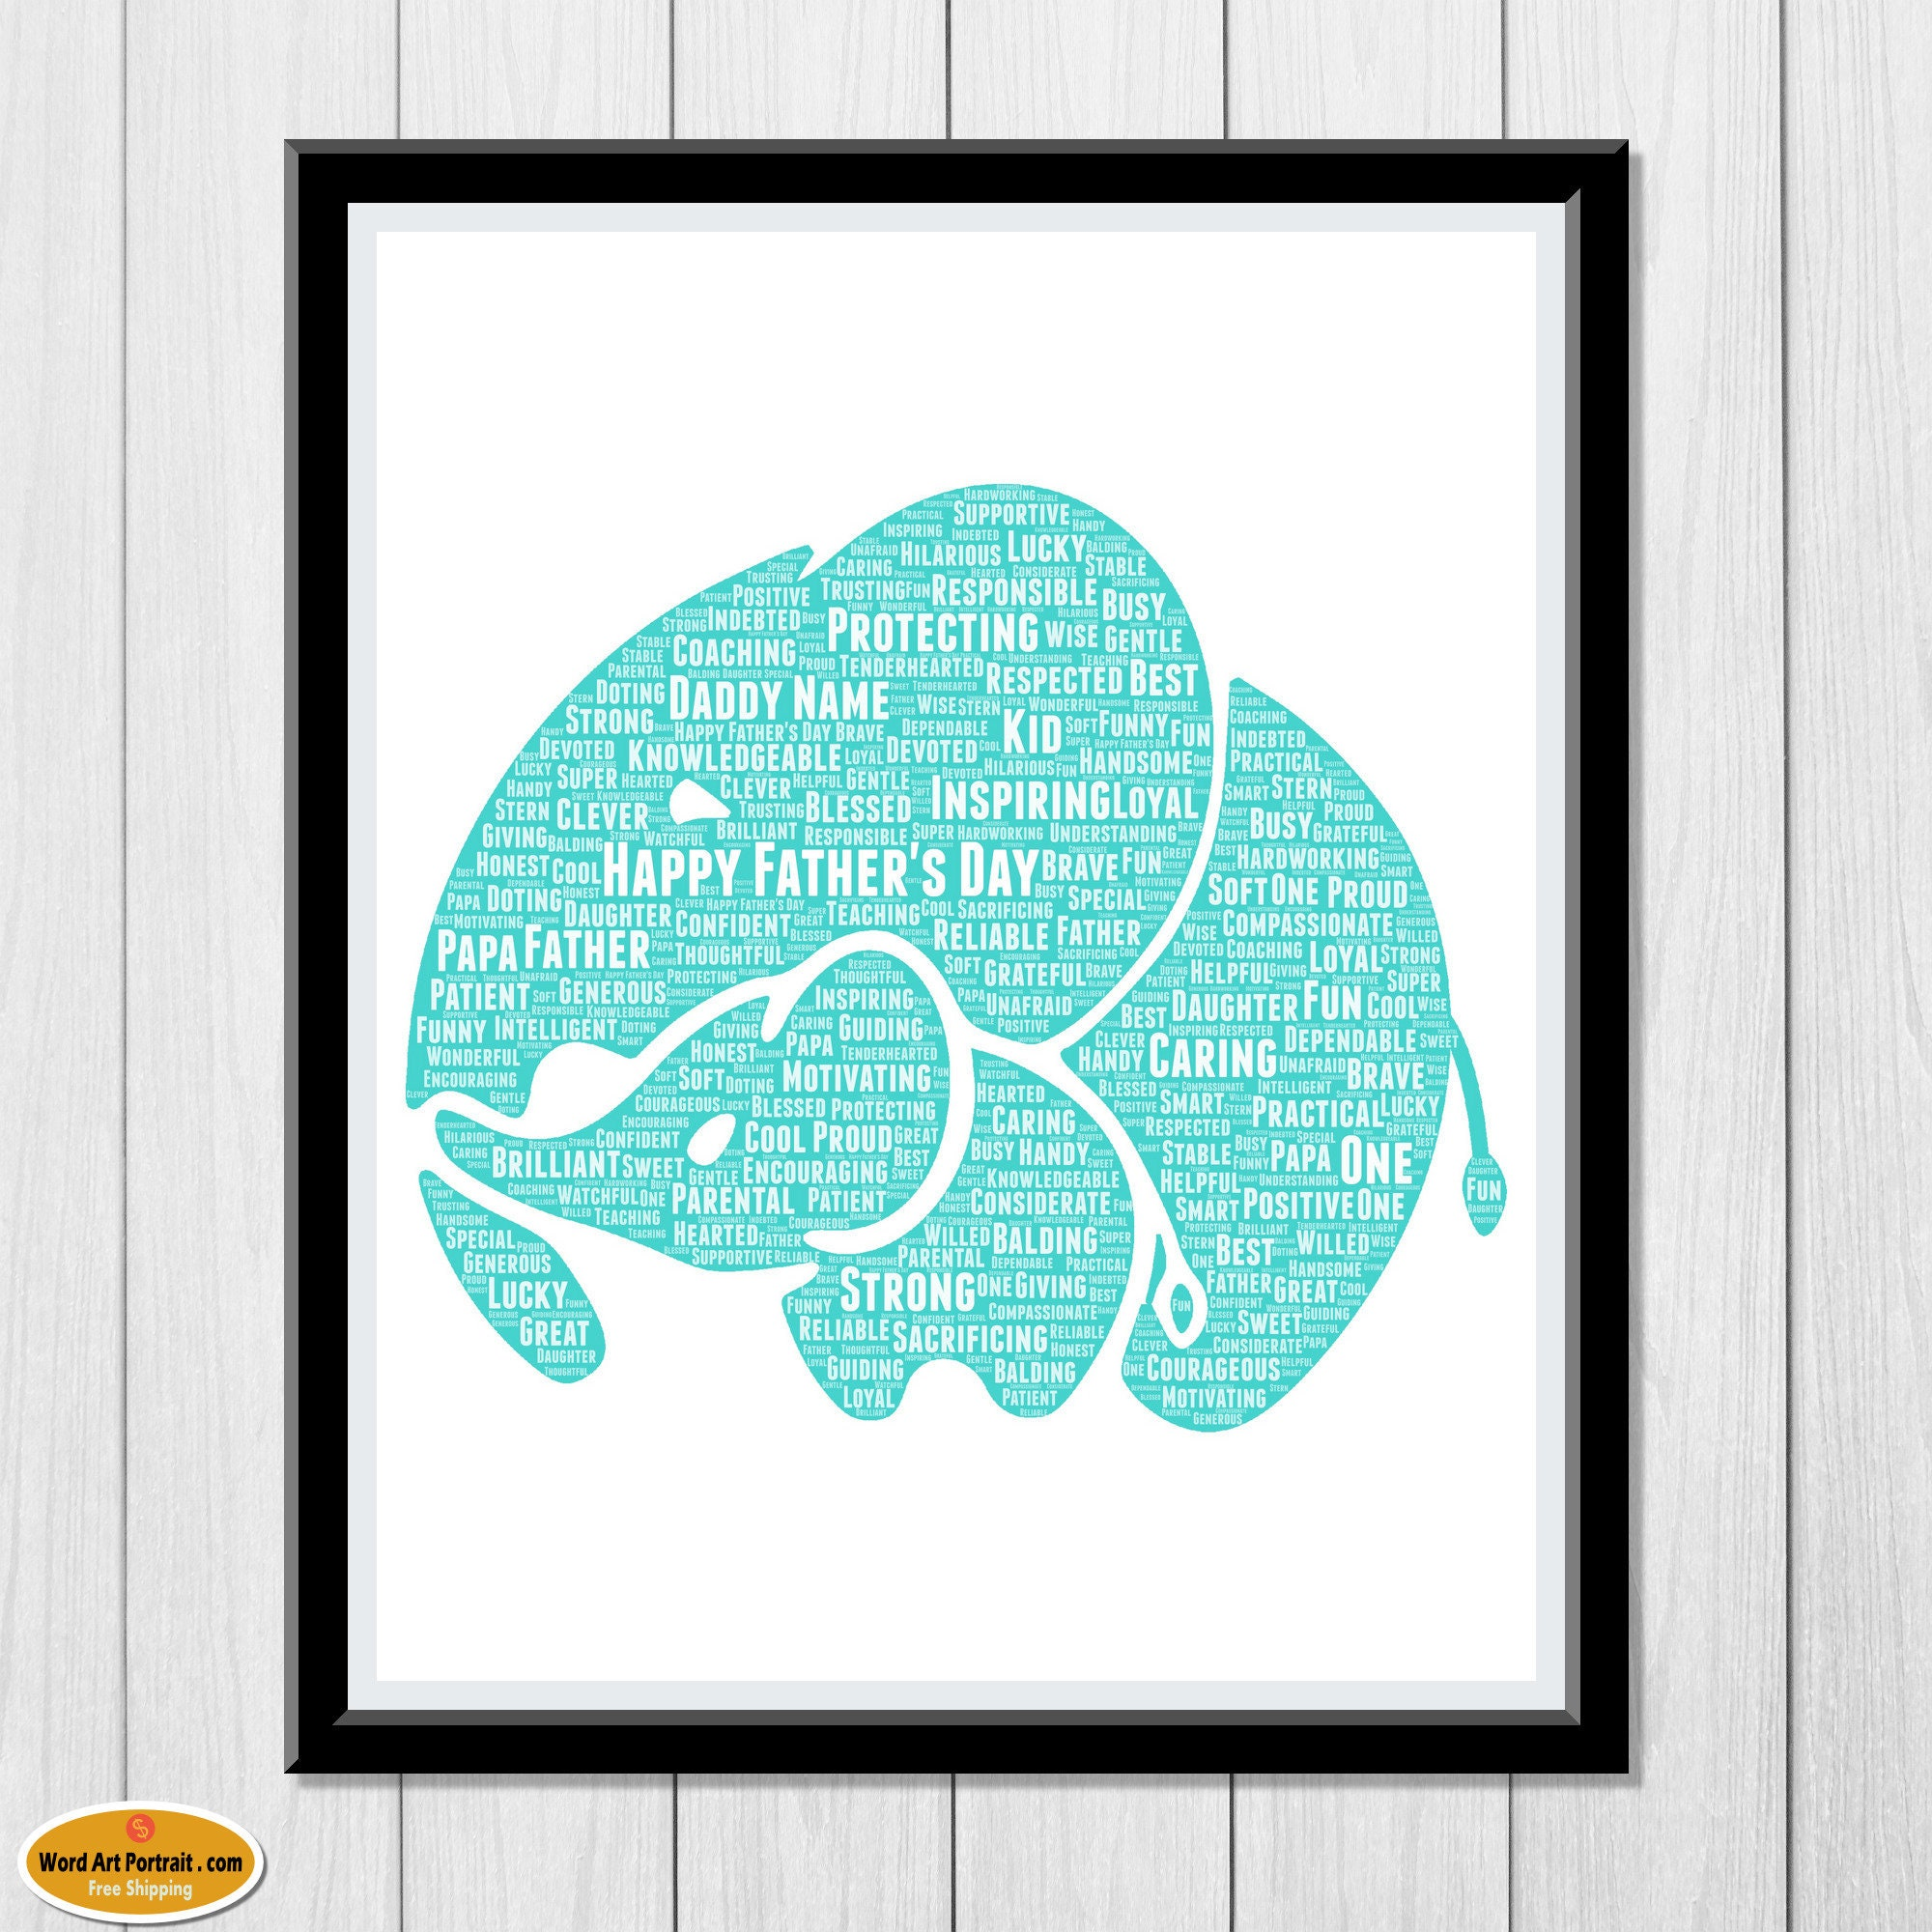 Personalized Elephant and Baby - Fathers Day Gift - Personalised fathers day gifts - Gift for Dad - Gift from Daughter - Custom Wall Decor